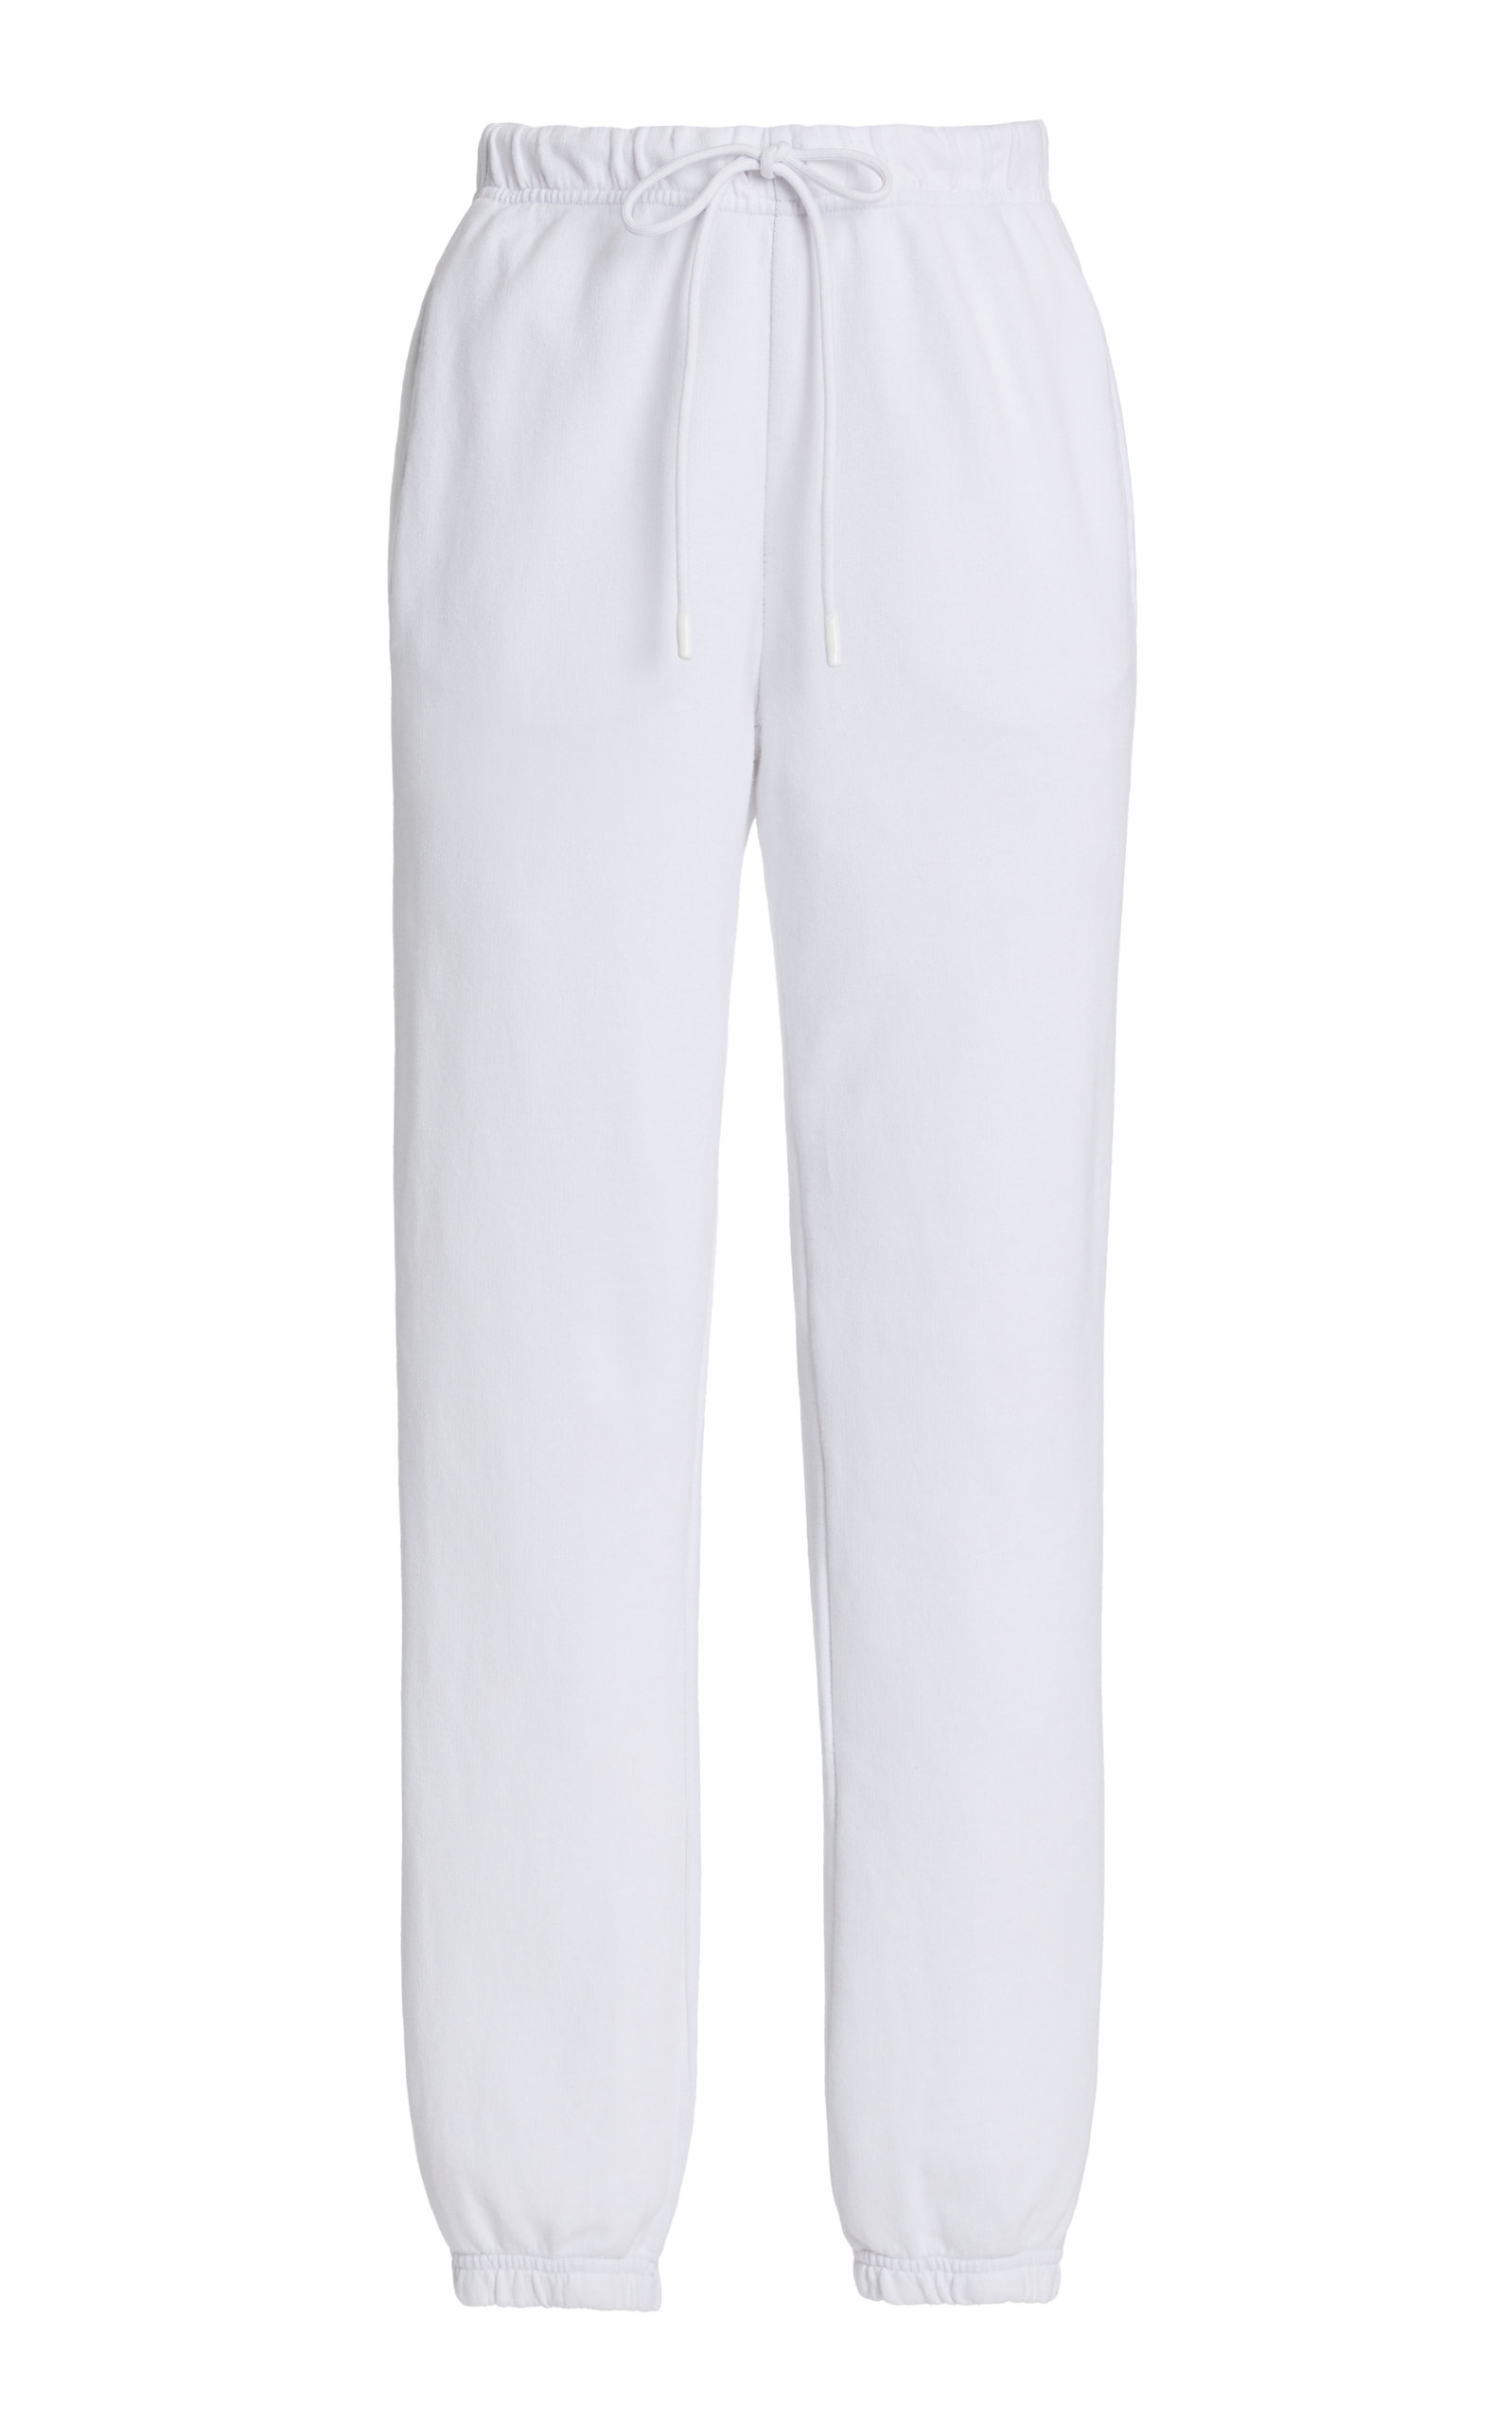 Cotton Citizen Women's The Milan Cotton Sweatpants In Pearl